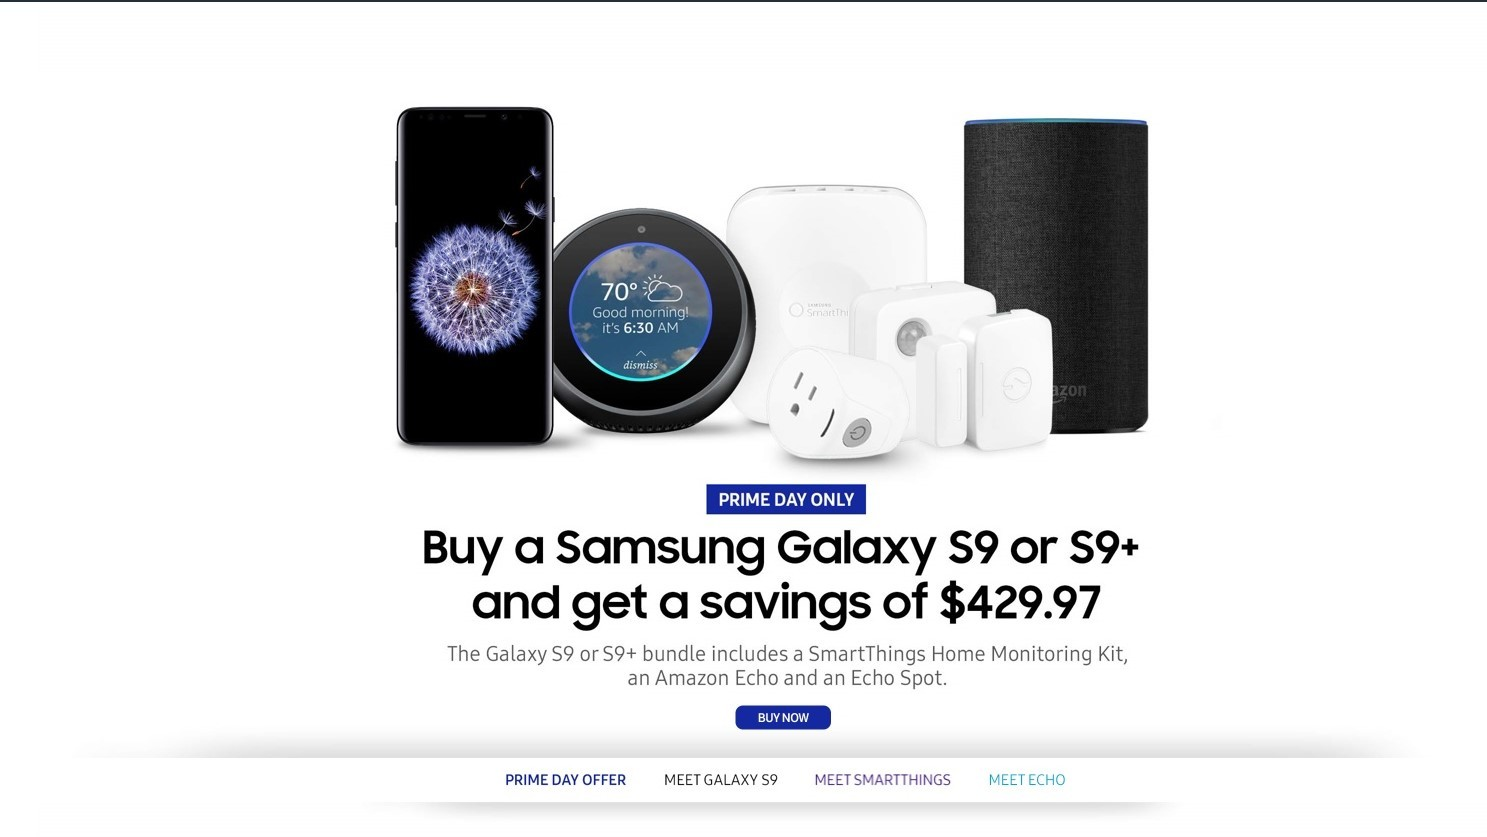 The $430 savings on the Galaxy S9 and S9+ Prime Day bundles